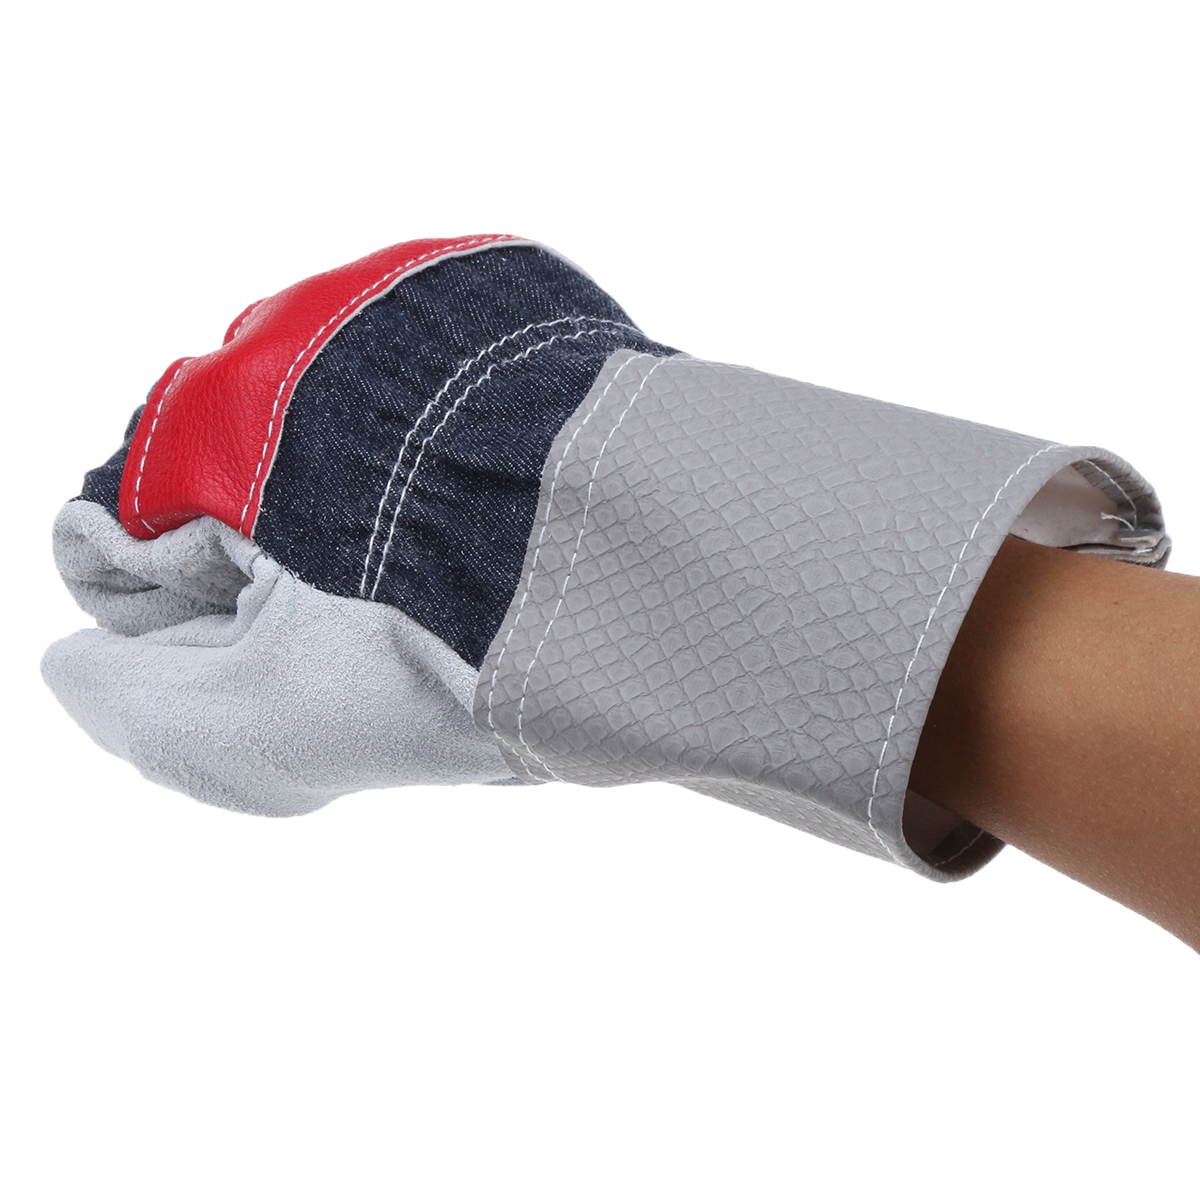 Heavy Duty Mens Leather Gardening Gloves Workplace Safety Security Protection